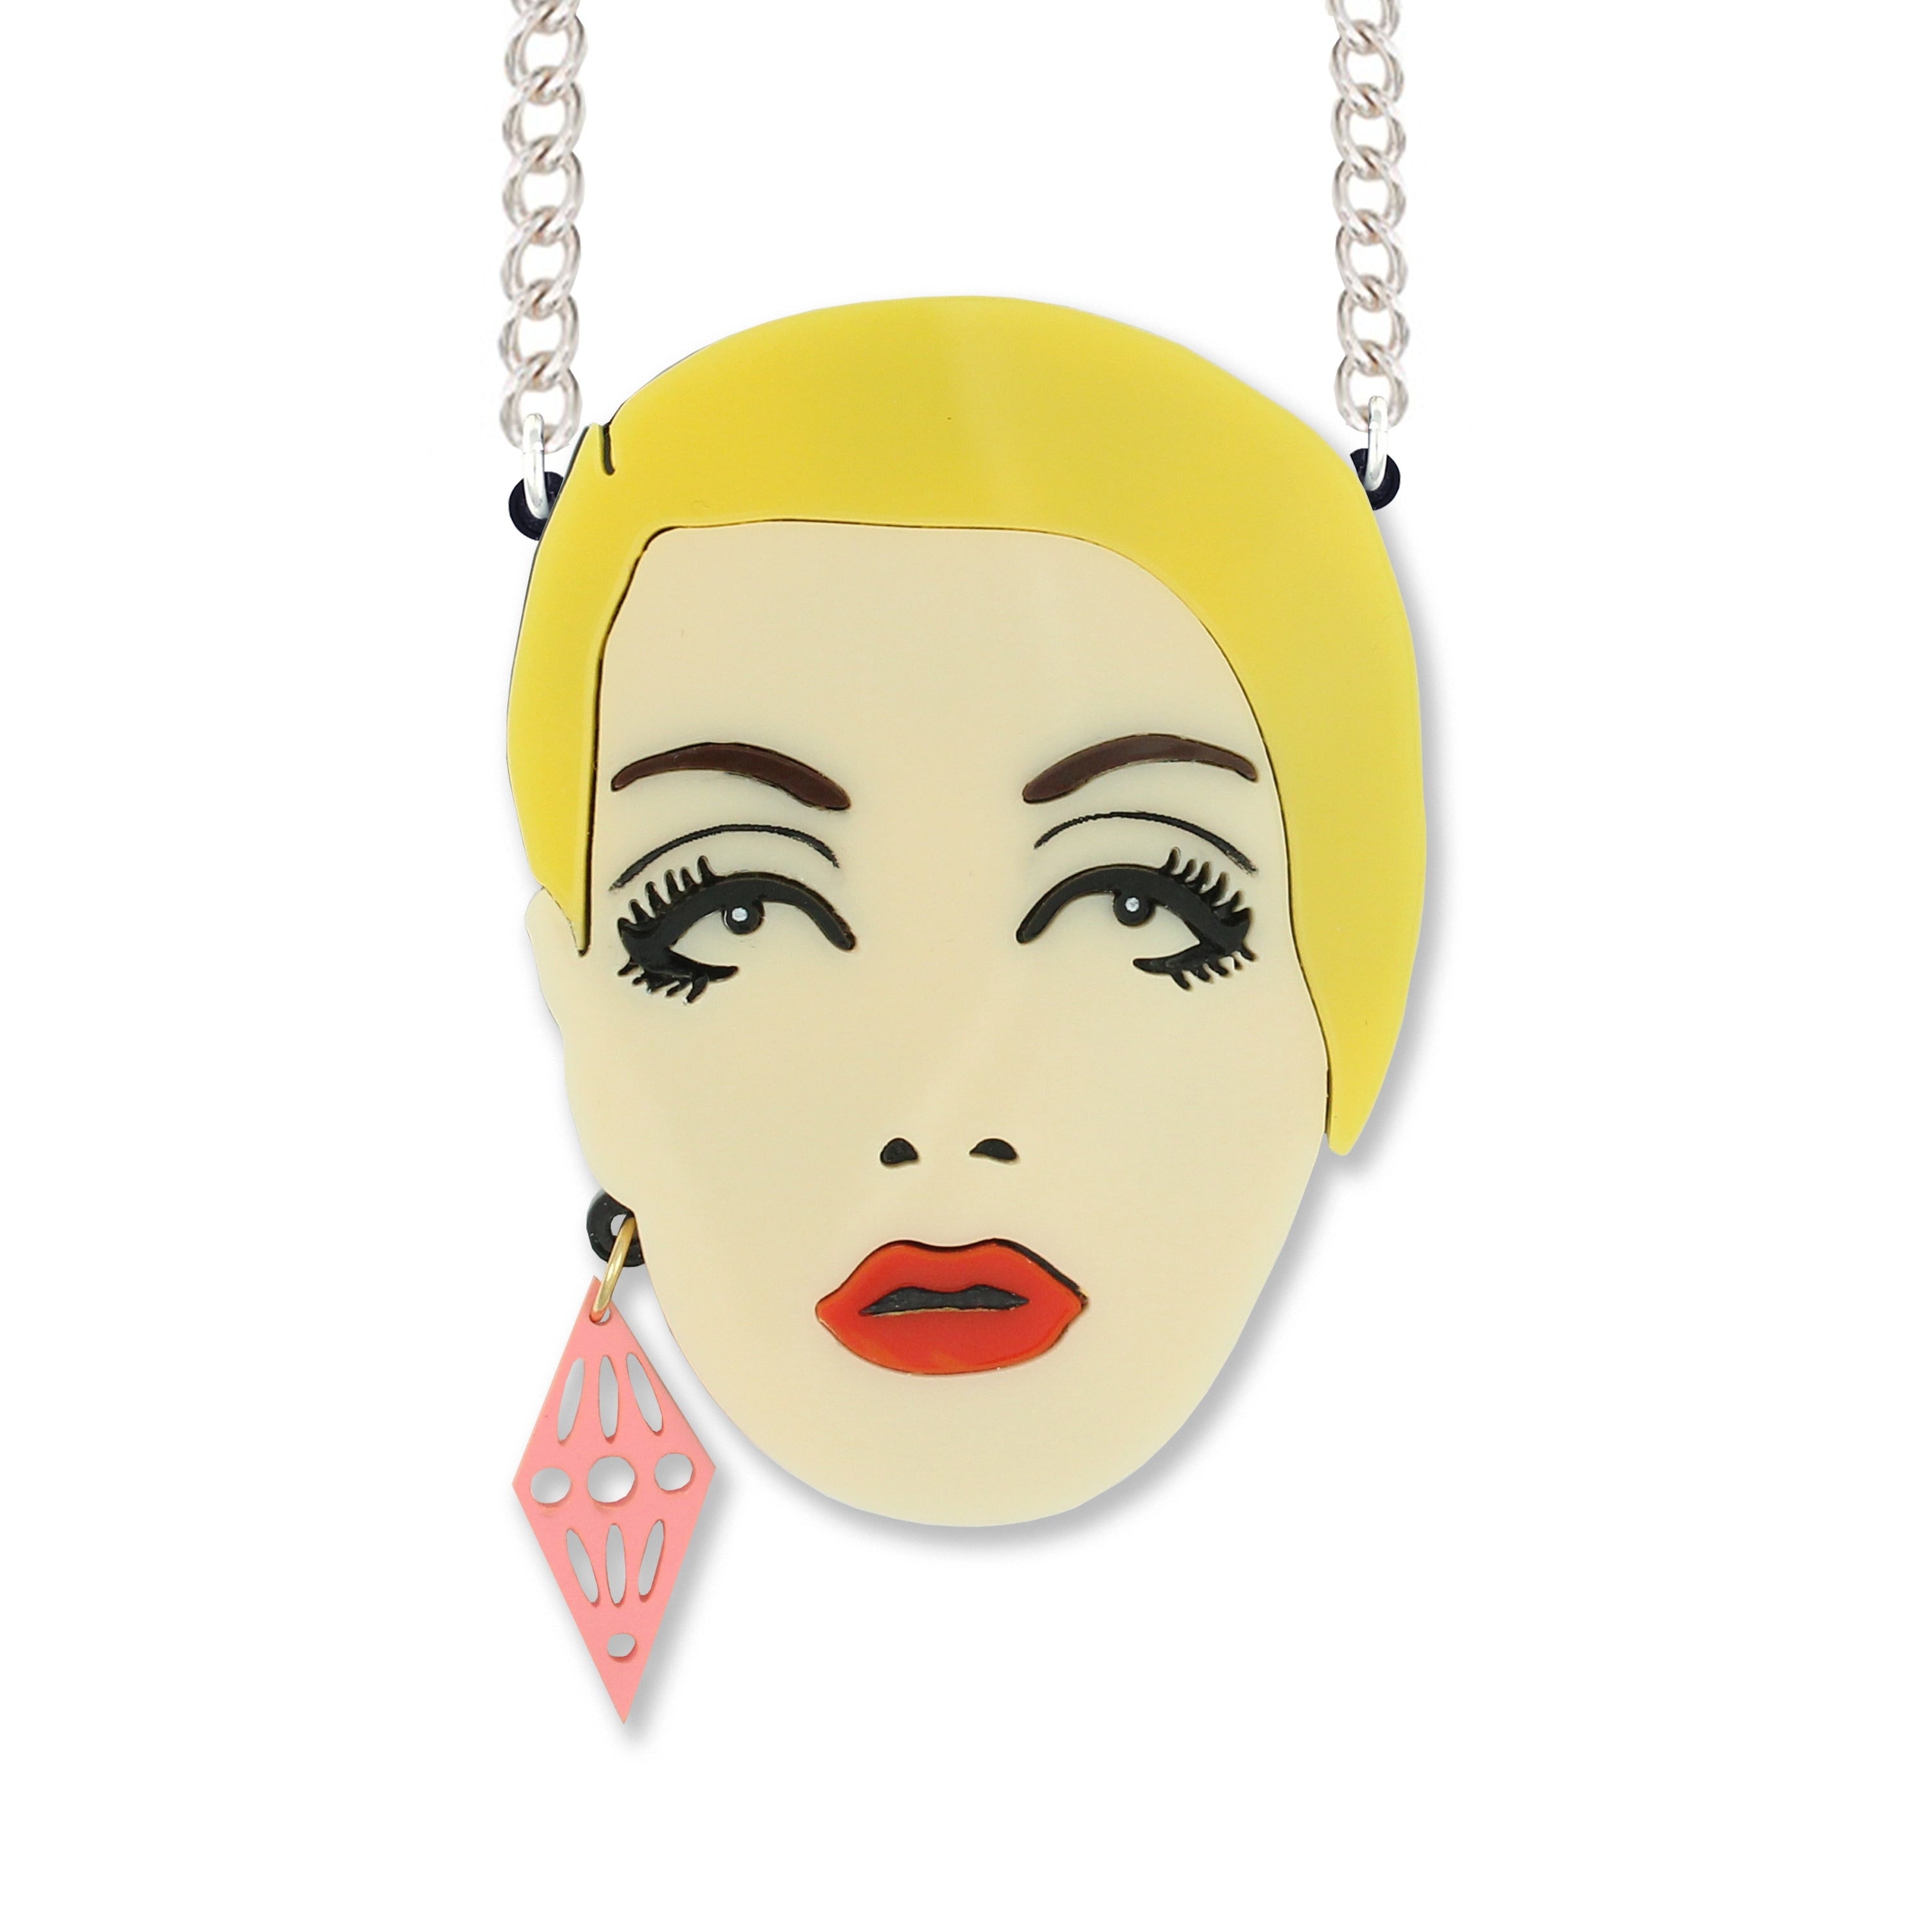 Twiggy necklace